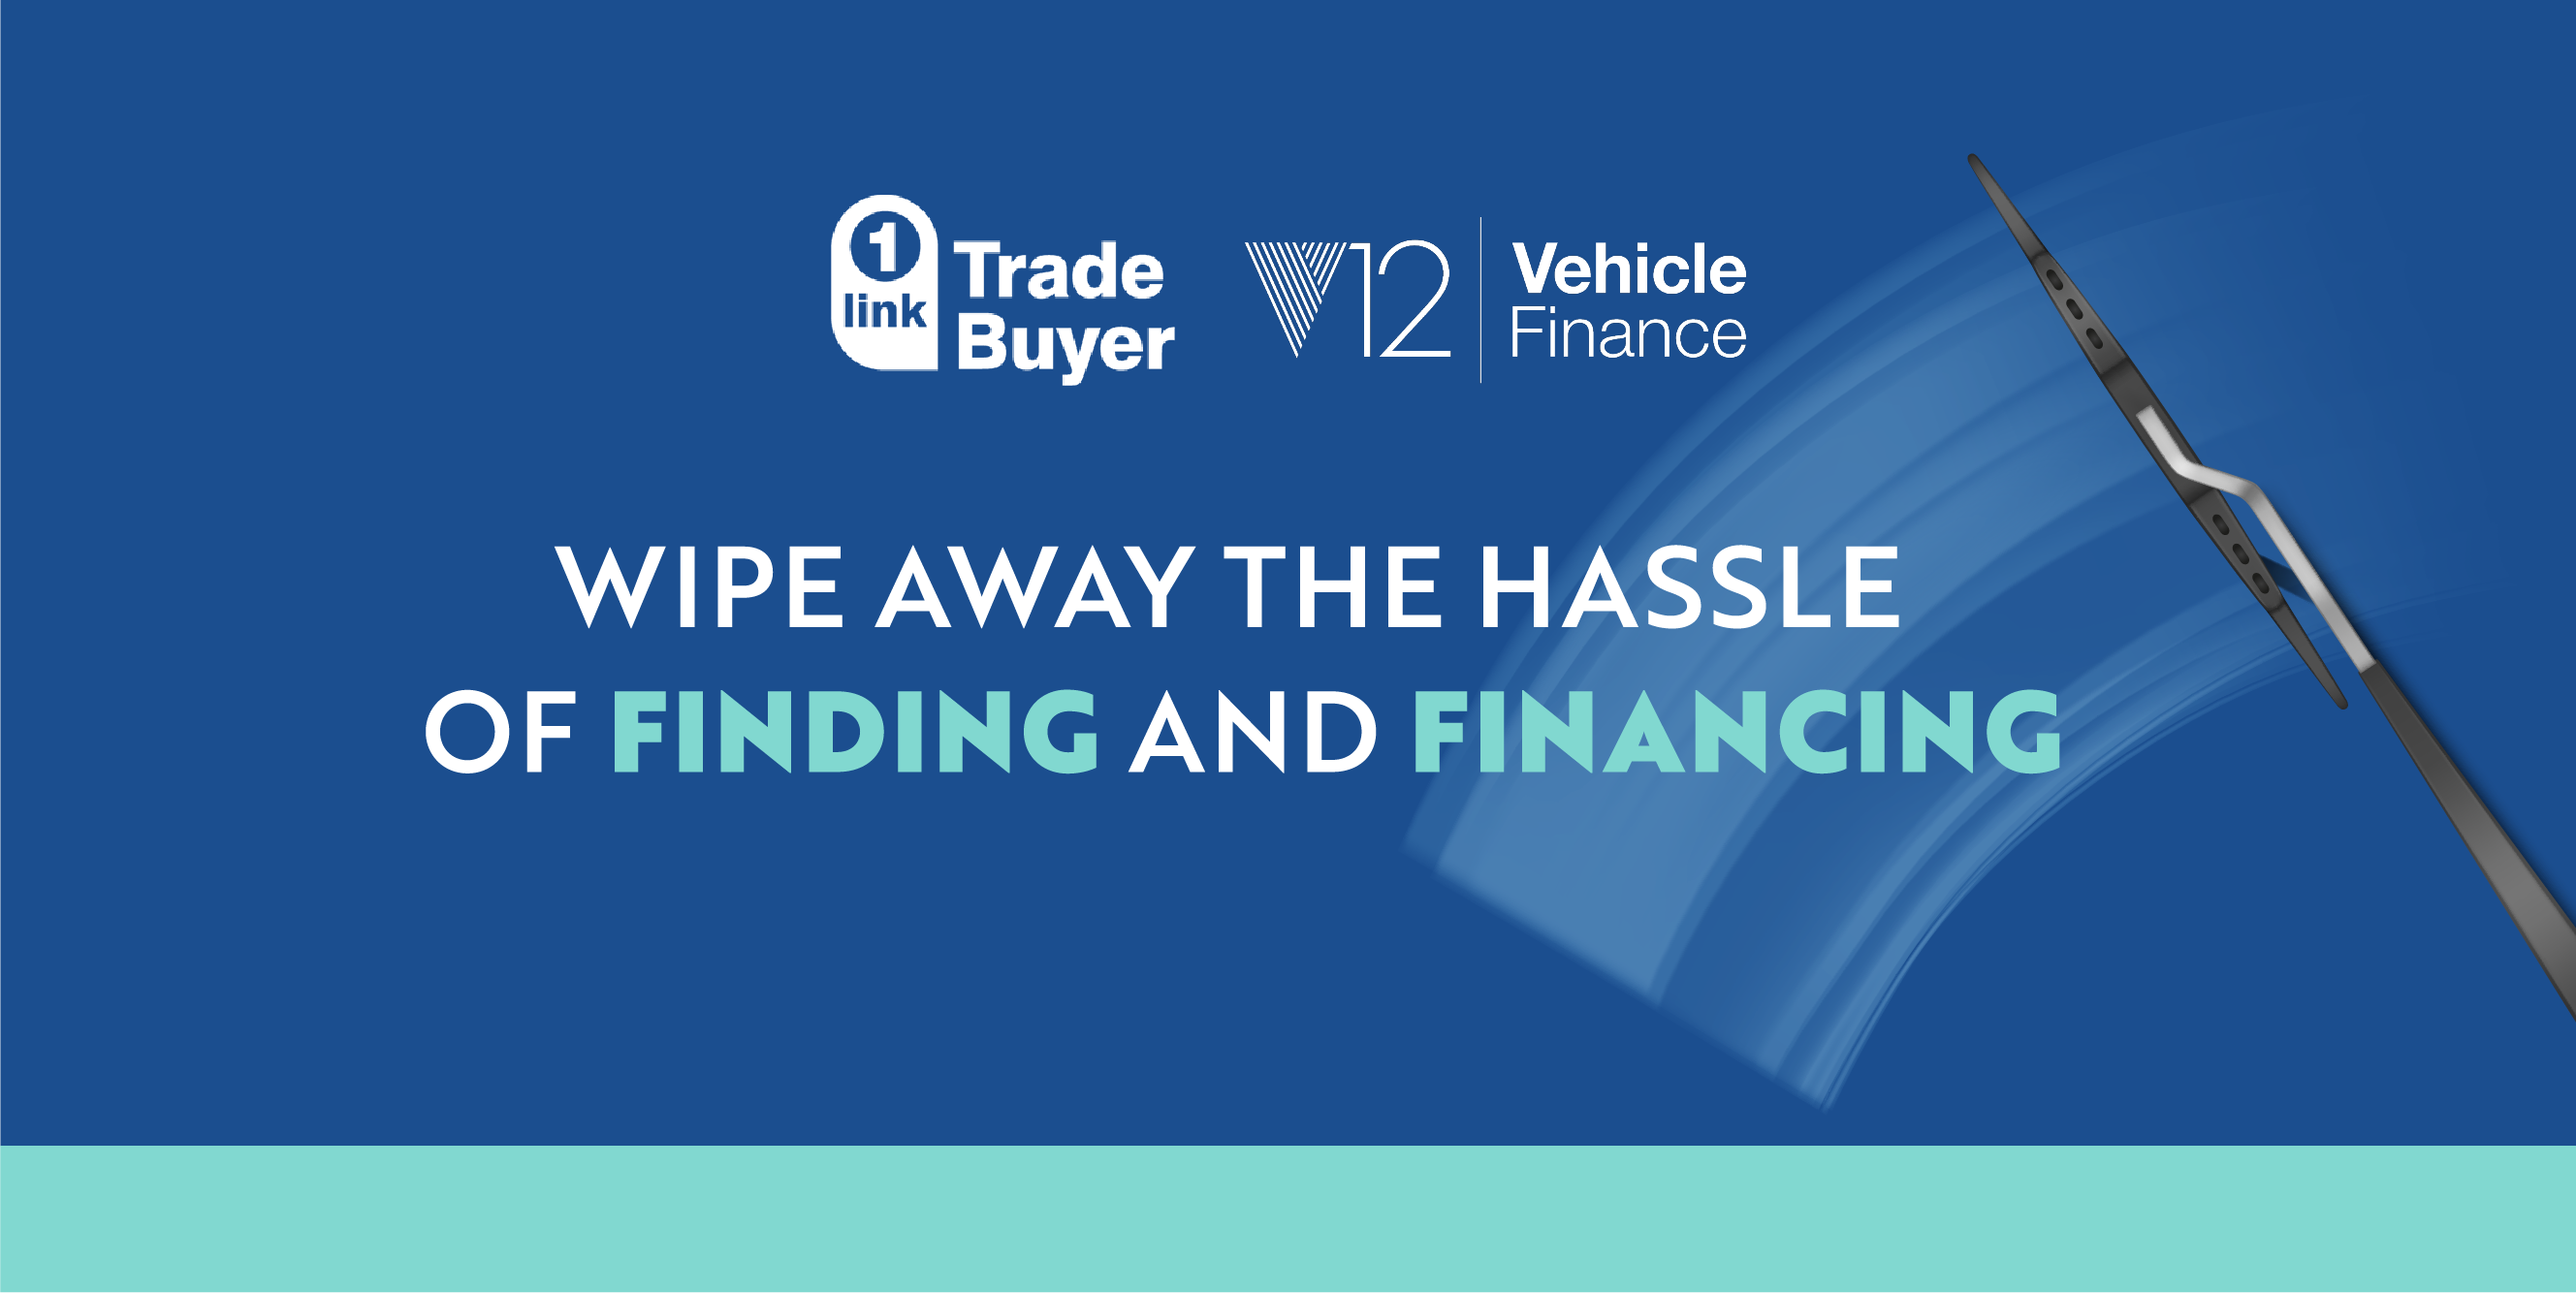 V12VF stock funding integrated into epyx's 1link Trade Buyer to create seamless process for dealers